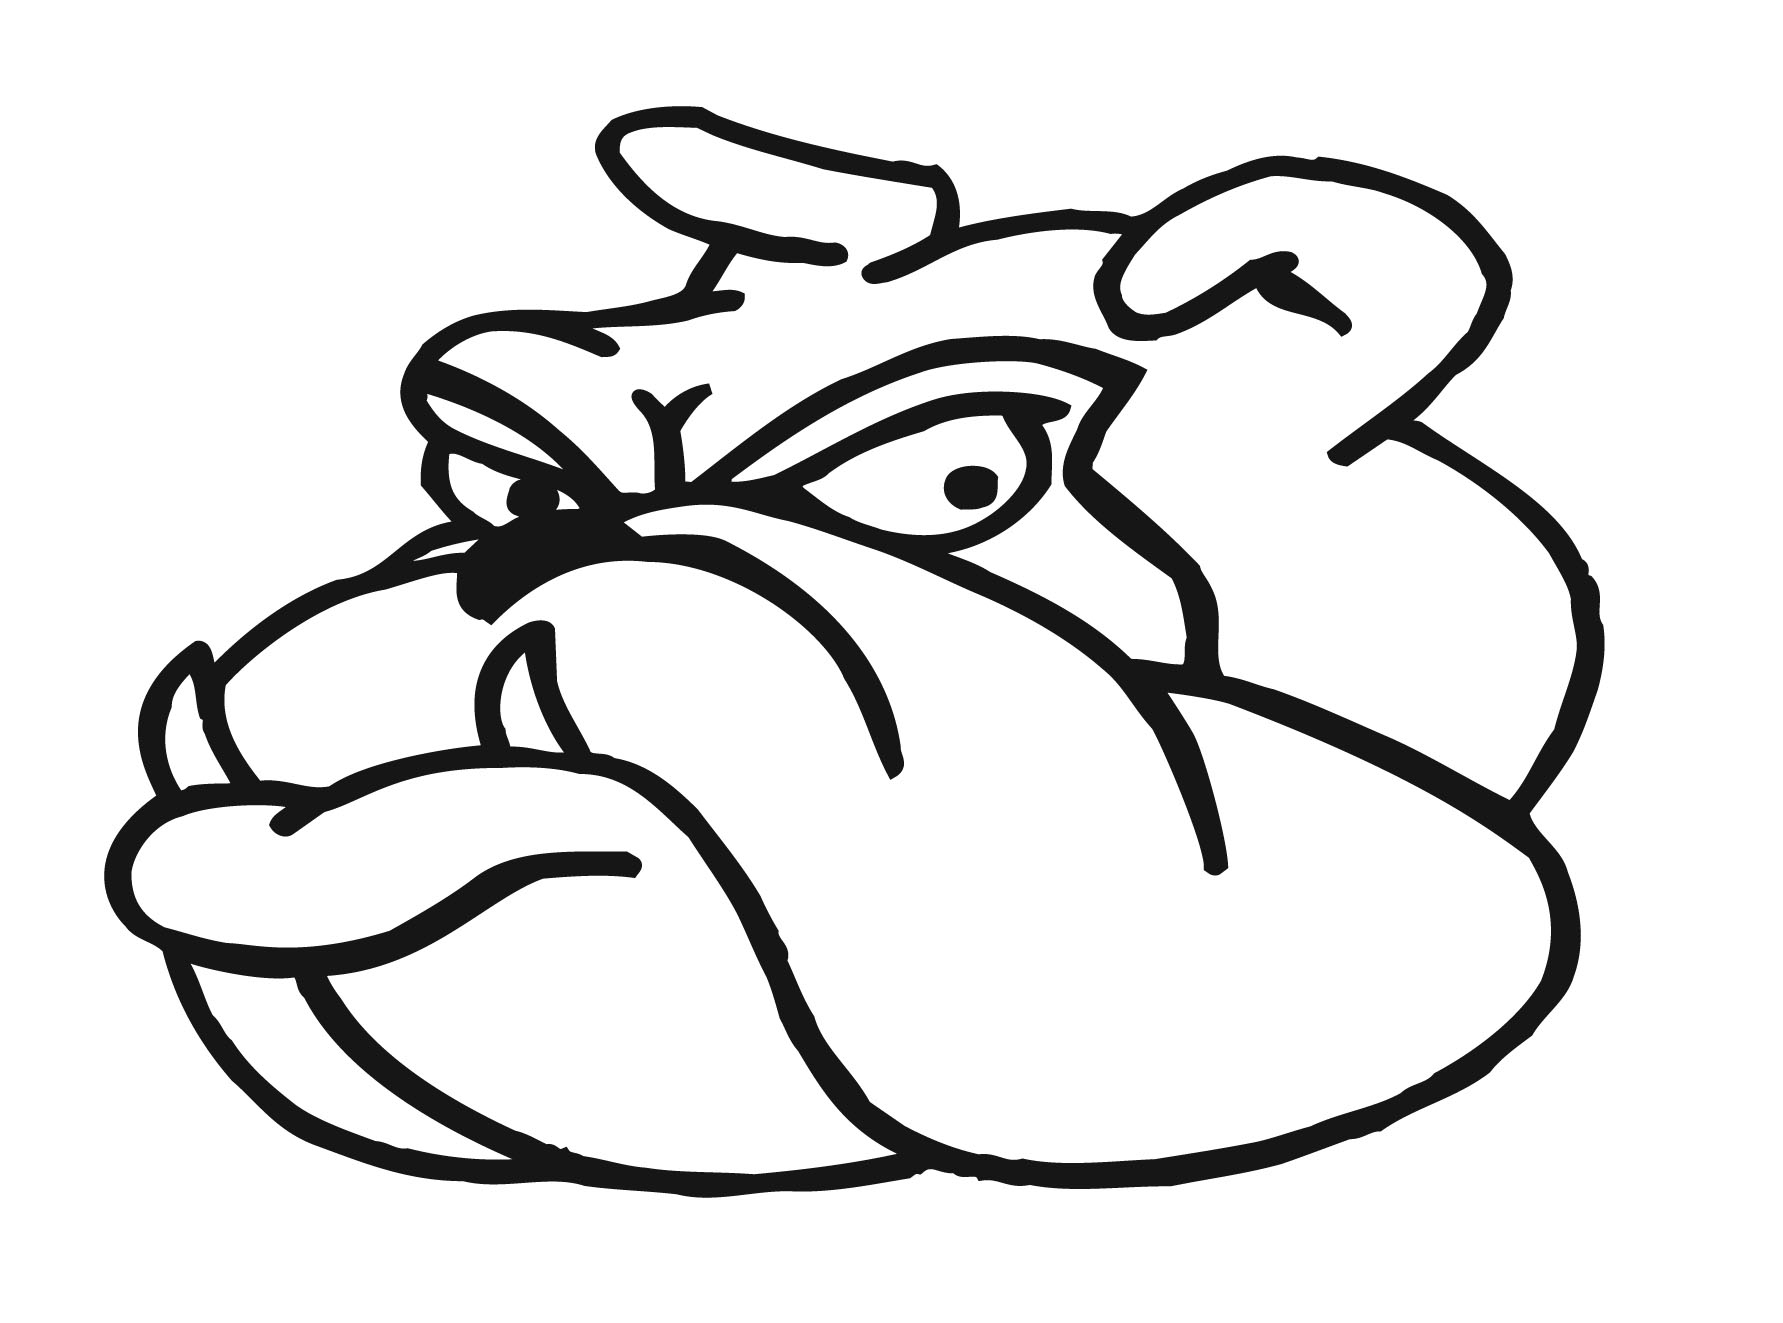 1783x1323 Image Of Bull Dog Clipart